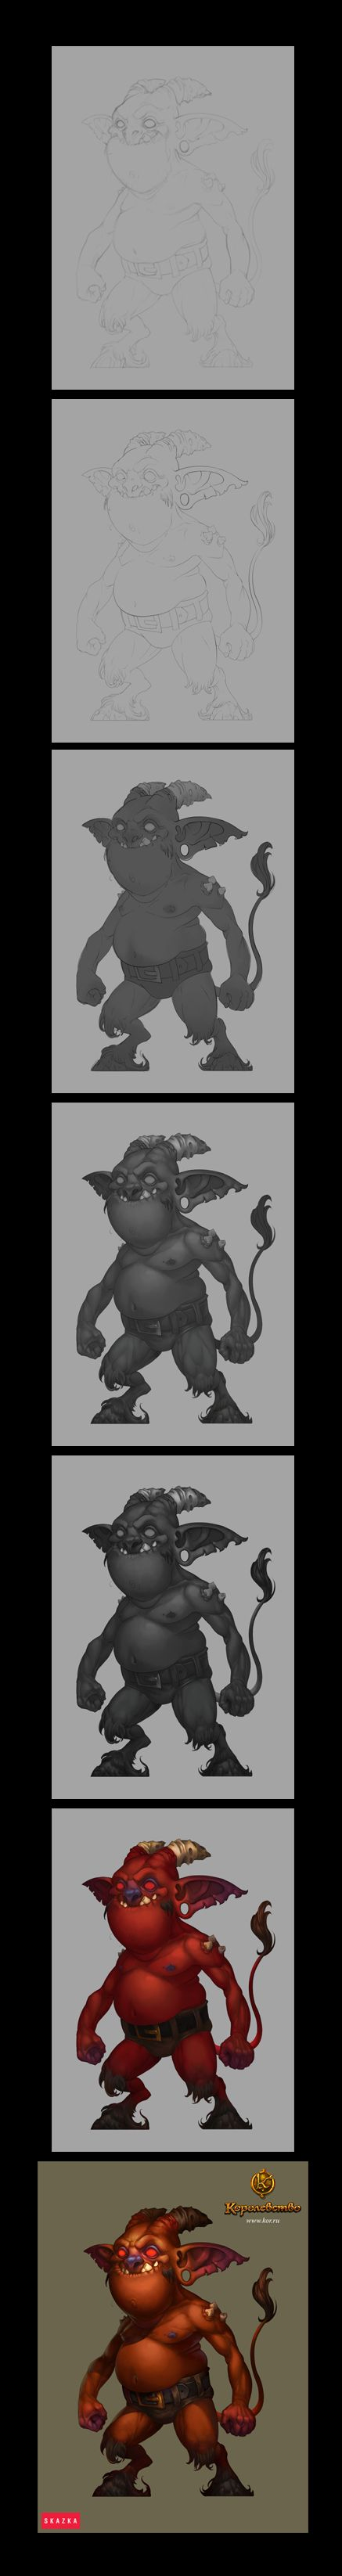 Impie wip by ~Gimaldinov on deviantART ✤ || CHARACTER DESIGN REFERENCES | キャラクターデザイン | çizgi film • Find more at https://www.facebook.com/CharacterDesignReferences & http://www.pinterest.com/characterdesigh if you're looking for: #color #theory #contrast #animation #how #to #draw #paint #drawing #tutorial #lesson #balance #sketch #colors #painting #process #line #art #comics #tips #cartoon || ✤